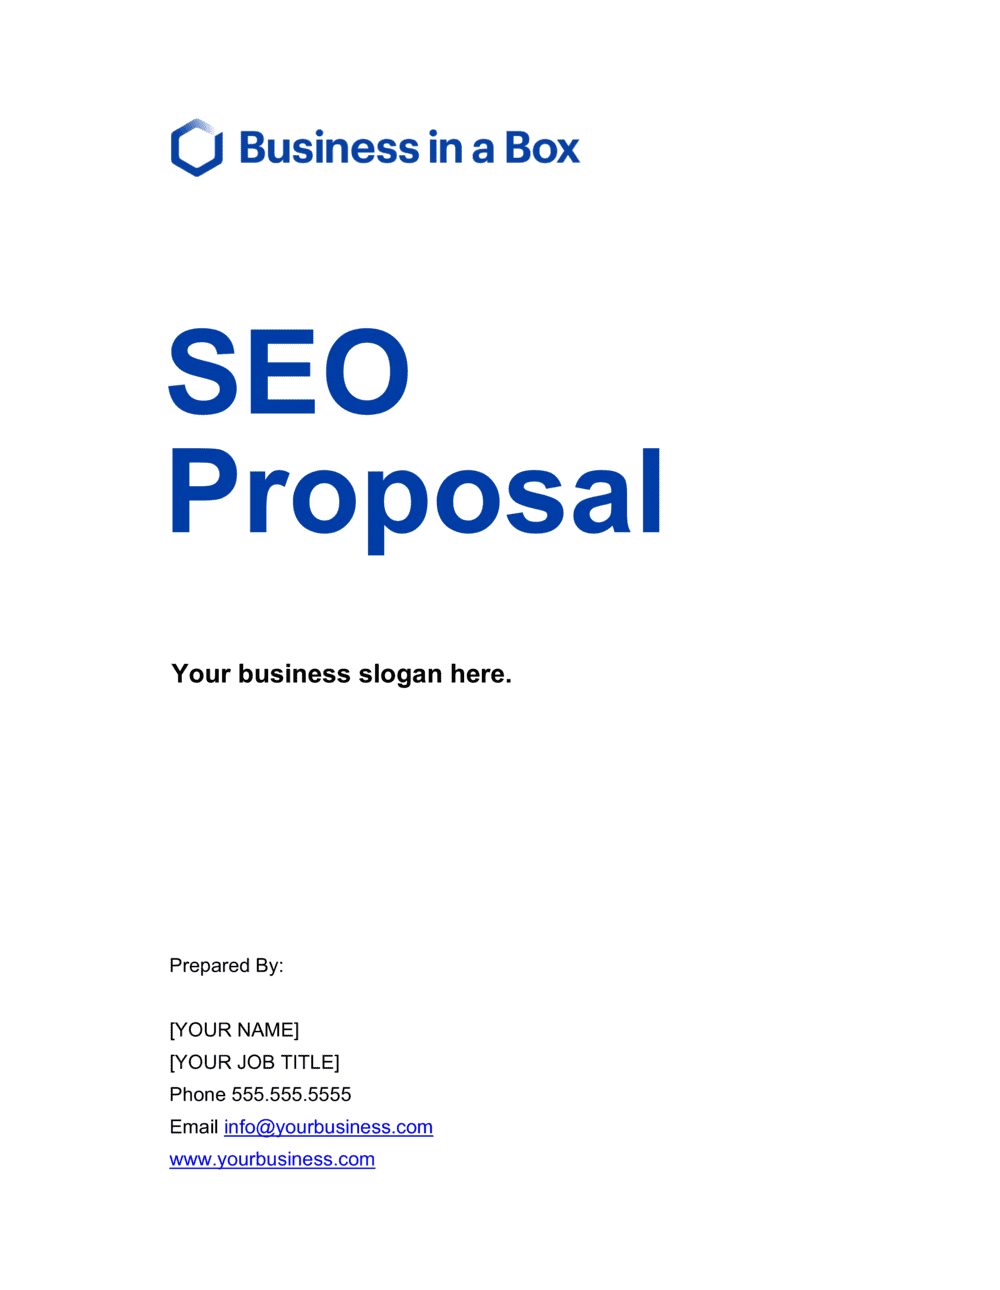 Business-in-a-Box's SEO Proposal Template